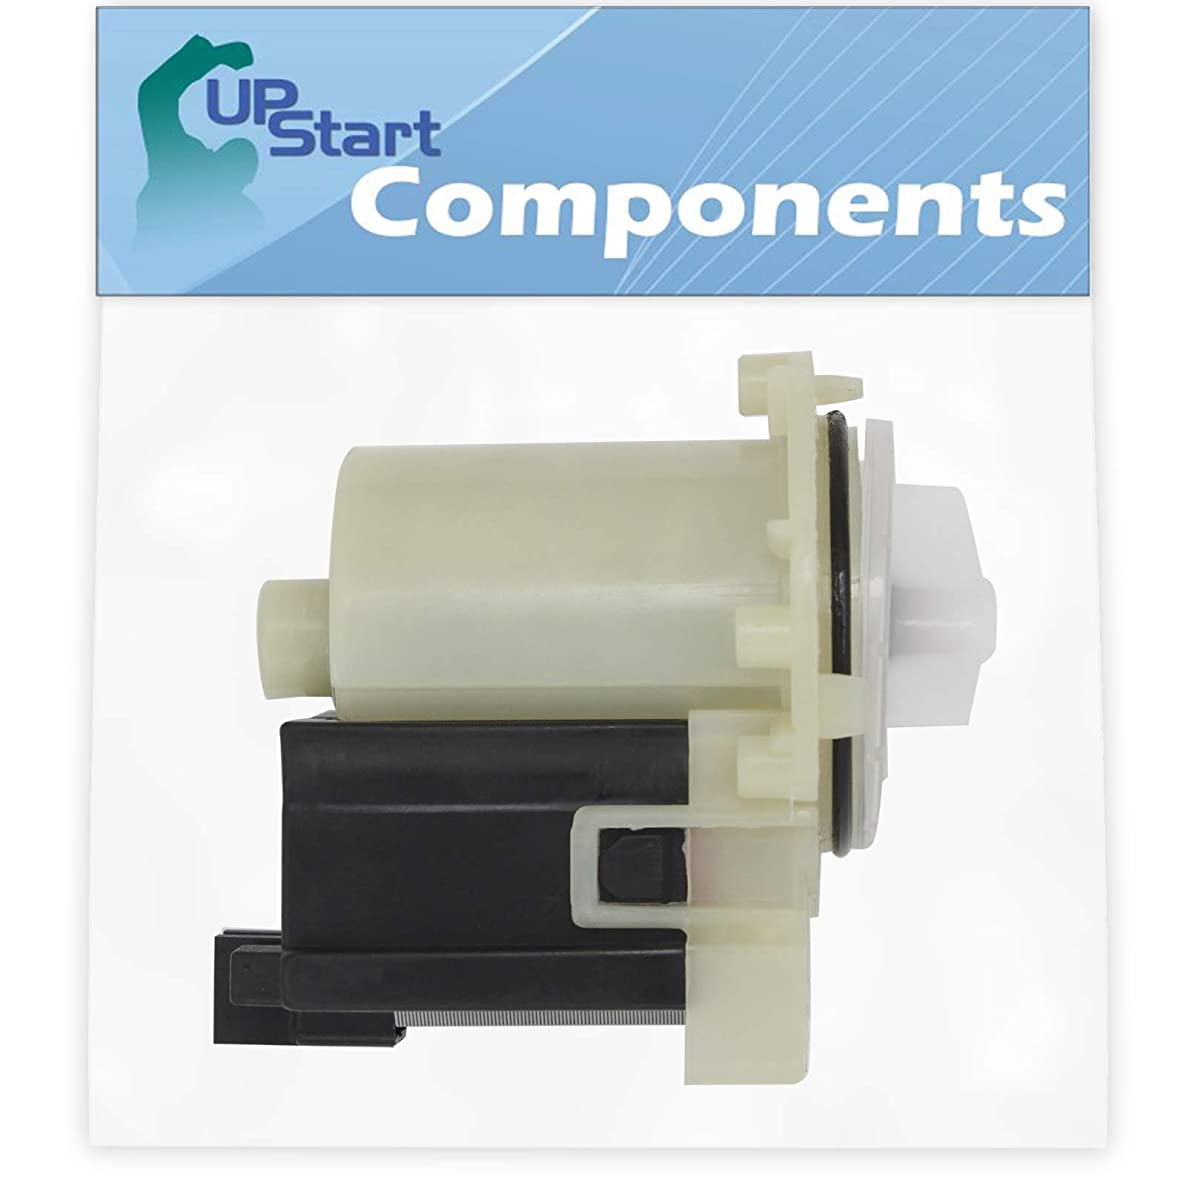 280187 Washer Drain Pump Motor Only Replacement for Kenmore/Sears 11047086600 Washing Machine - Compatible with 8181684 Water Pump - UpStart Components Brand